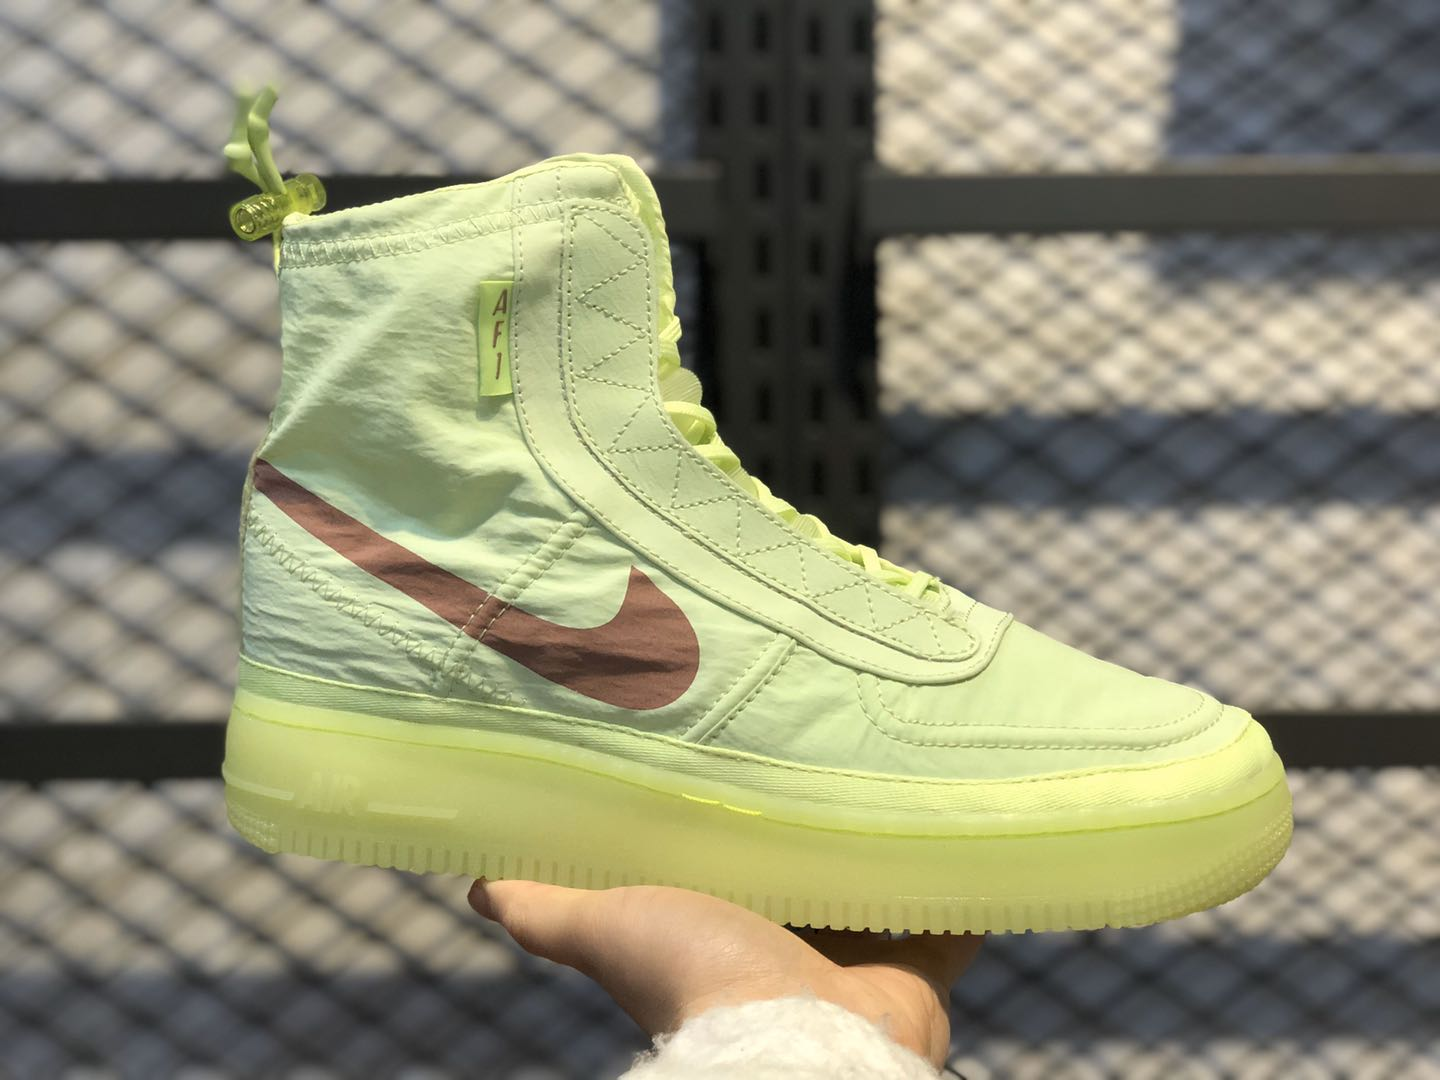 Nike Air Force 1 High Shell WMNS Neon Green/Bronze BQ6096-700